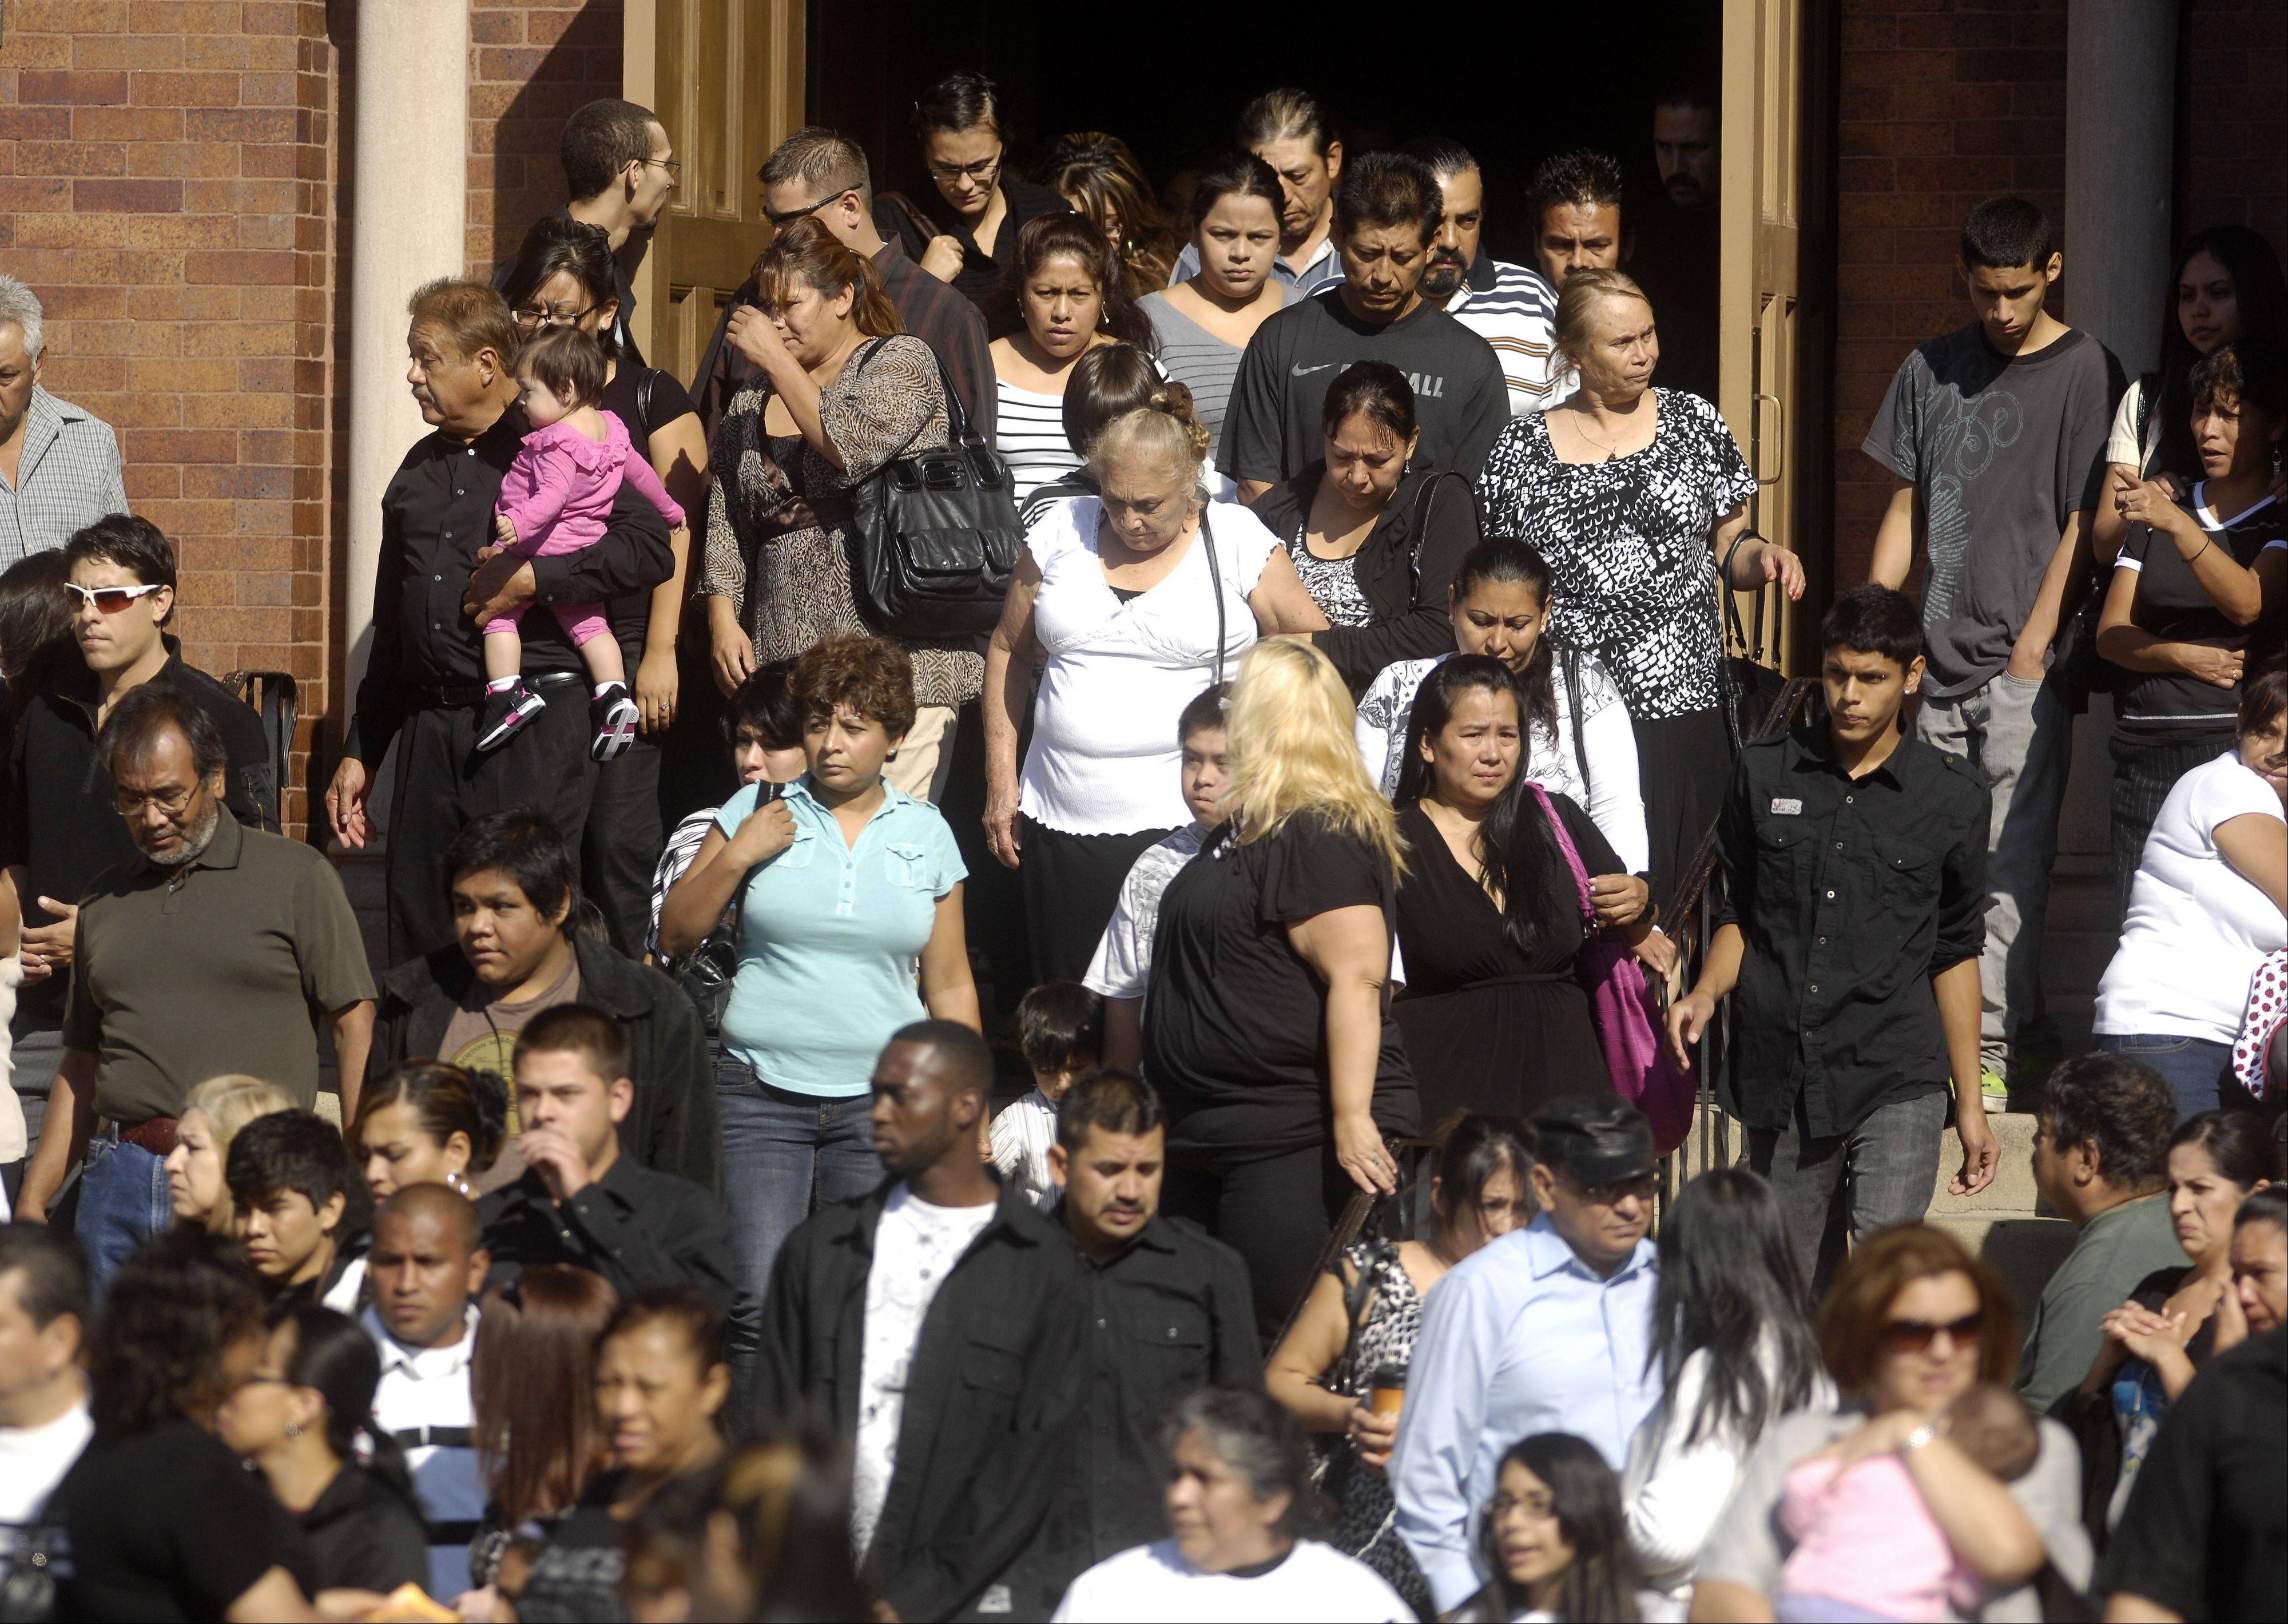 A large crowd leaves St. Joseph Catholic Church in Elgin Wednesday following the funeral for 5-year-old Eric M. Galarza Jr., who was killed Friday night.